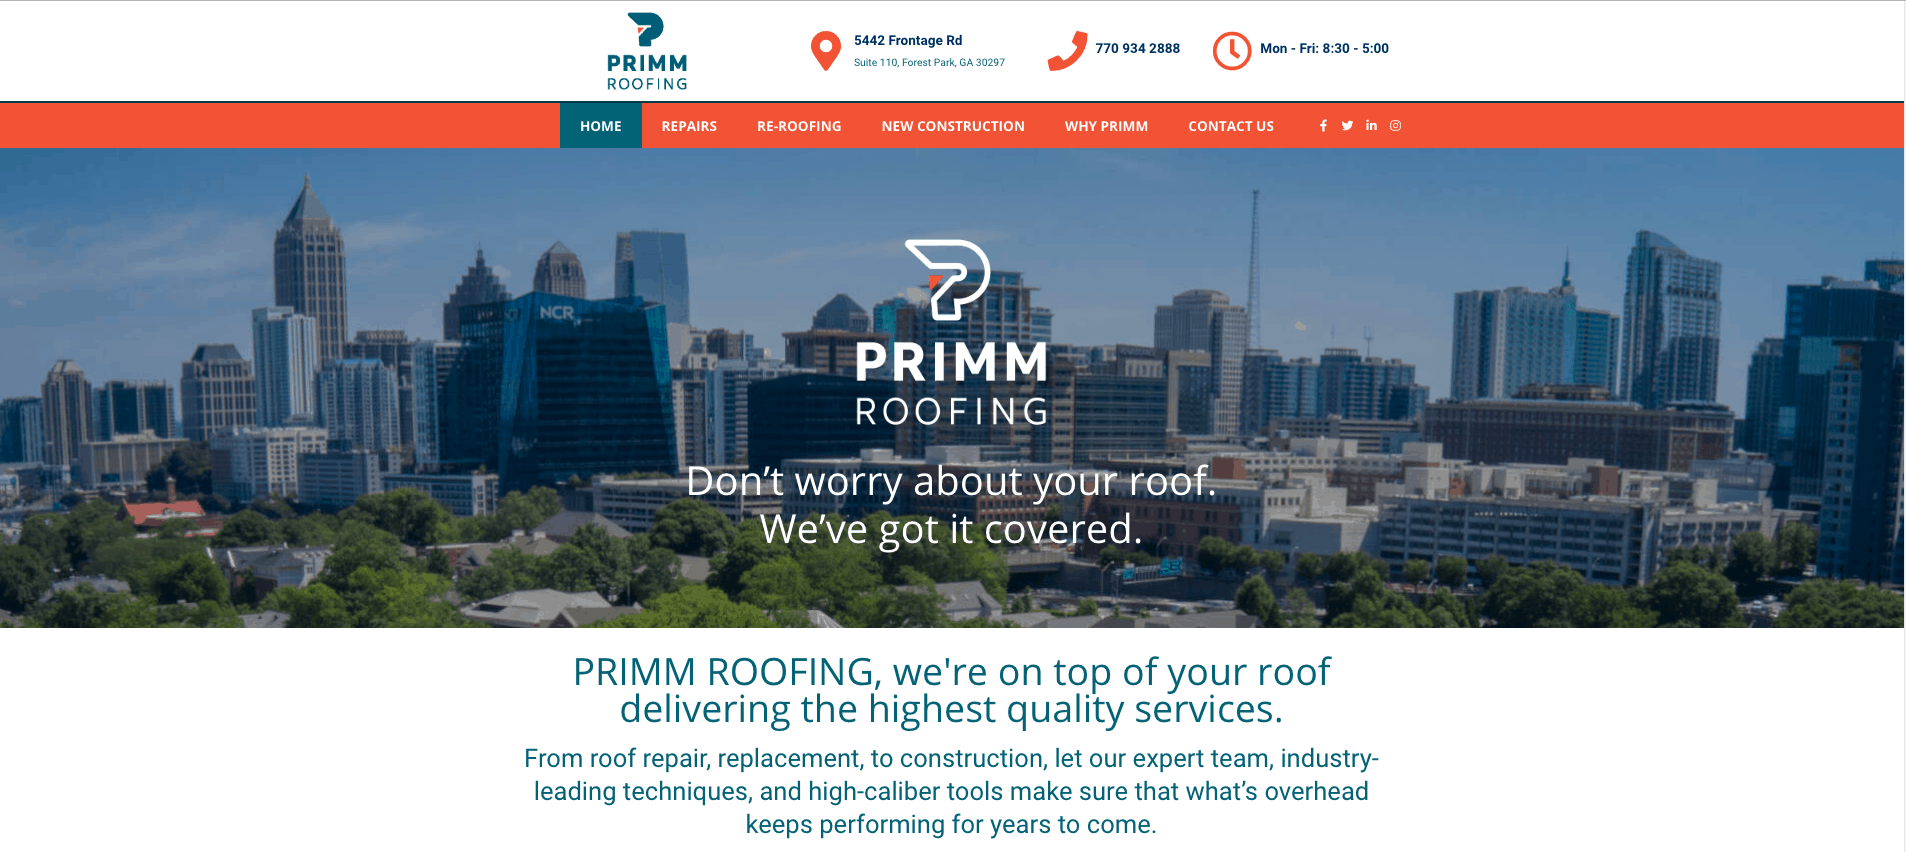 Primm Roofing New Home Page